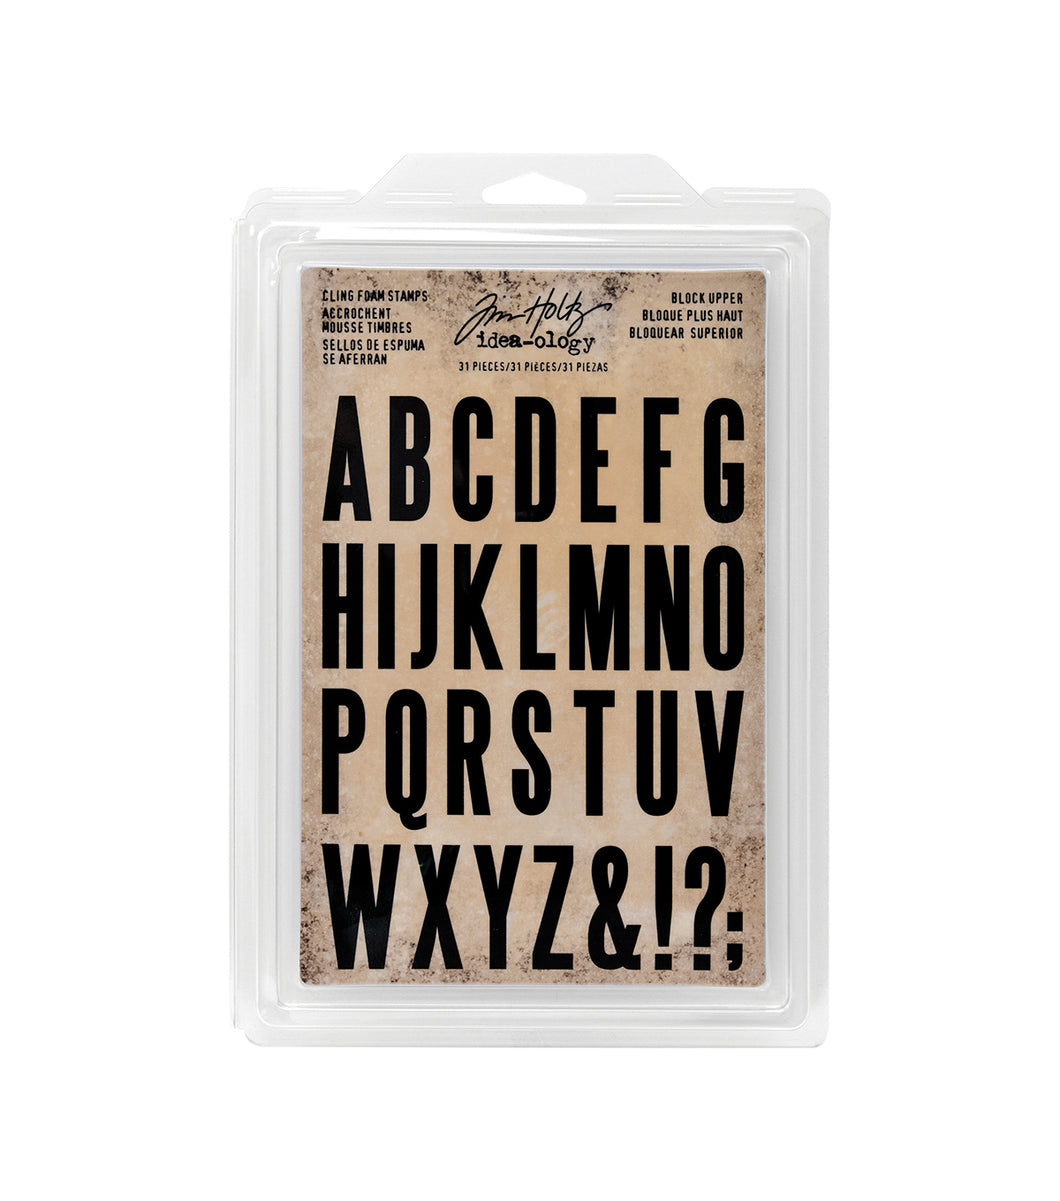 Tim Holtz Idea-ology- Cling Foam Stamps- Block Upper (TH93577)